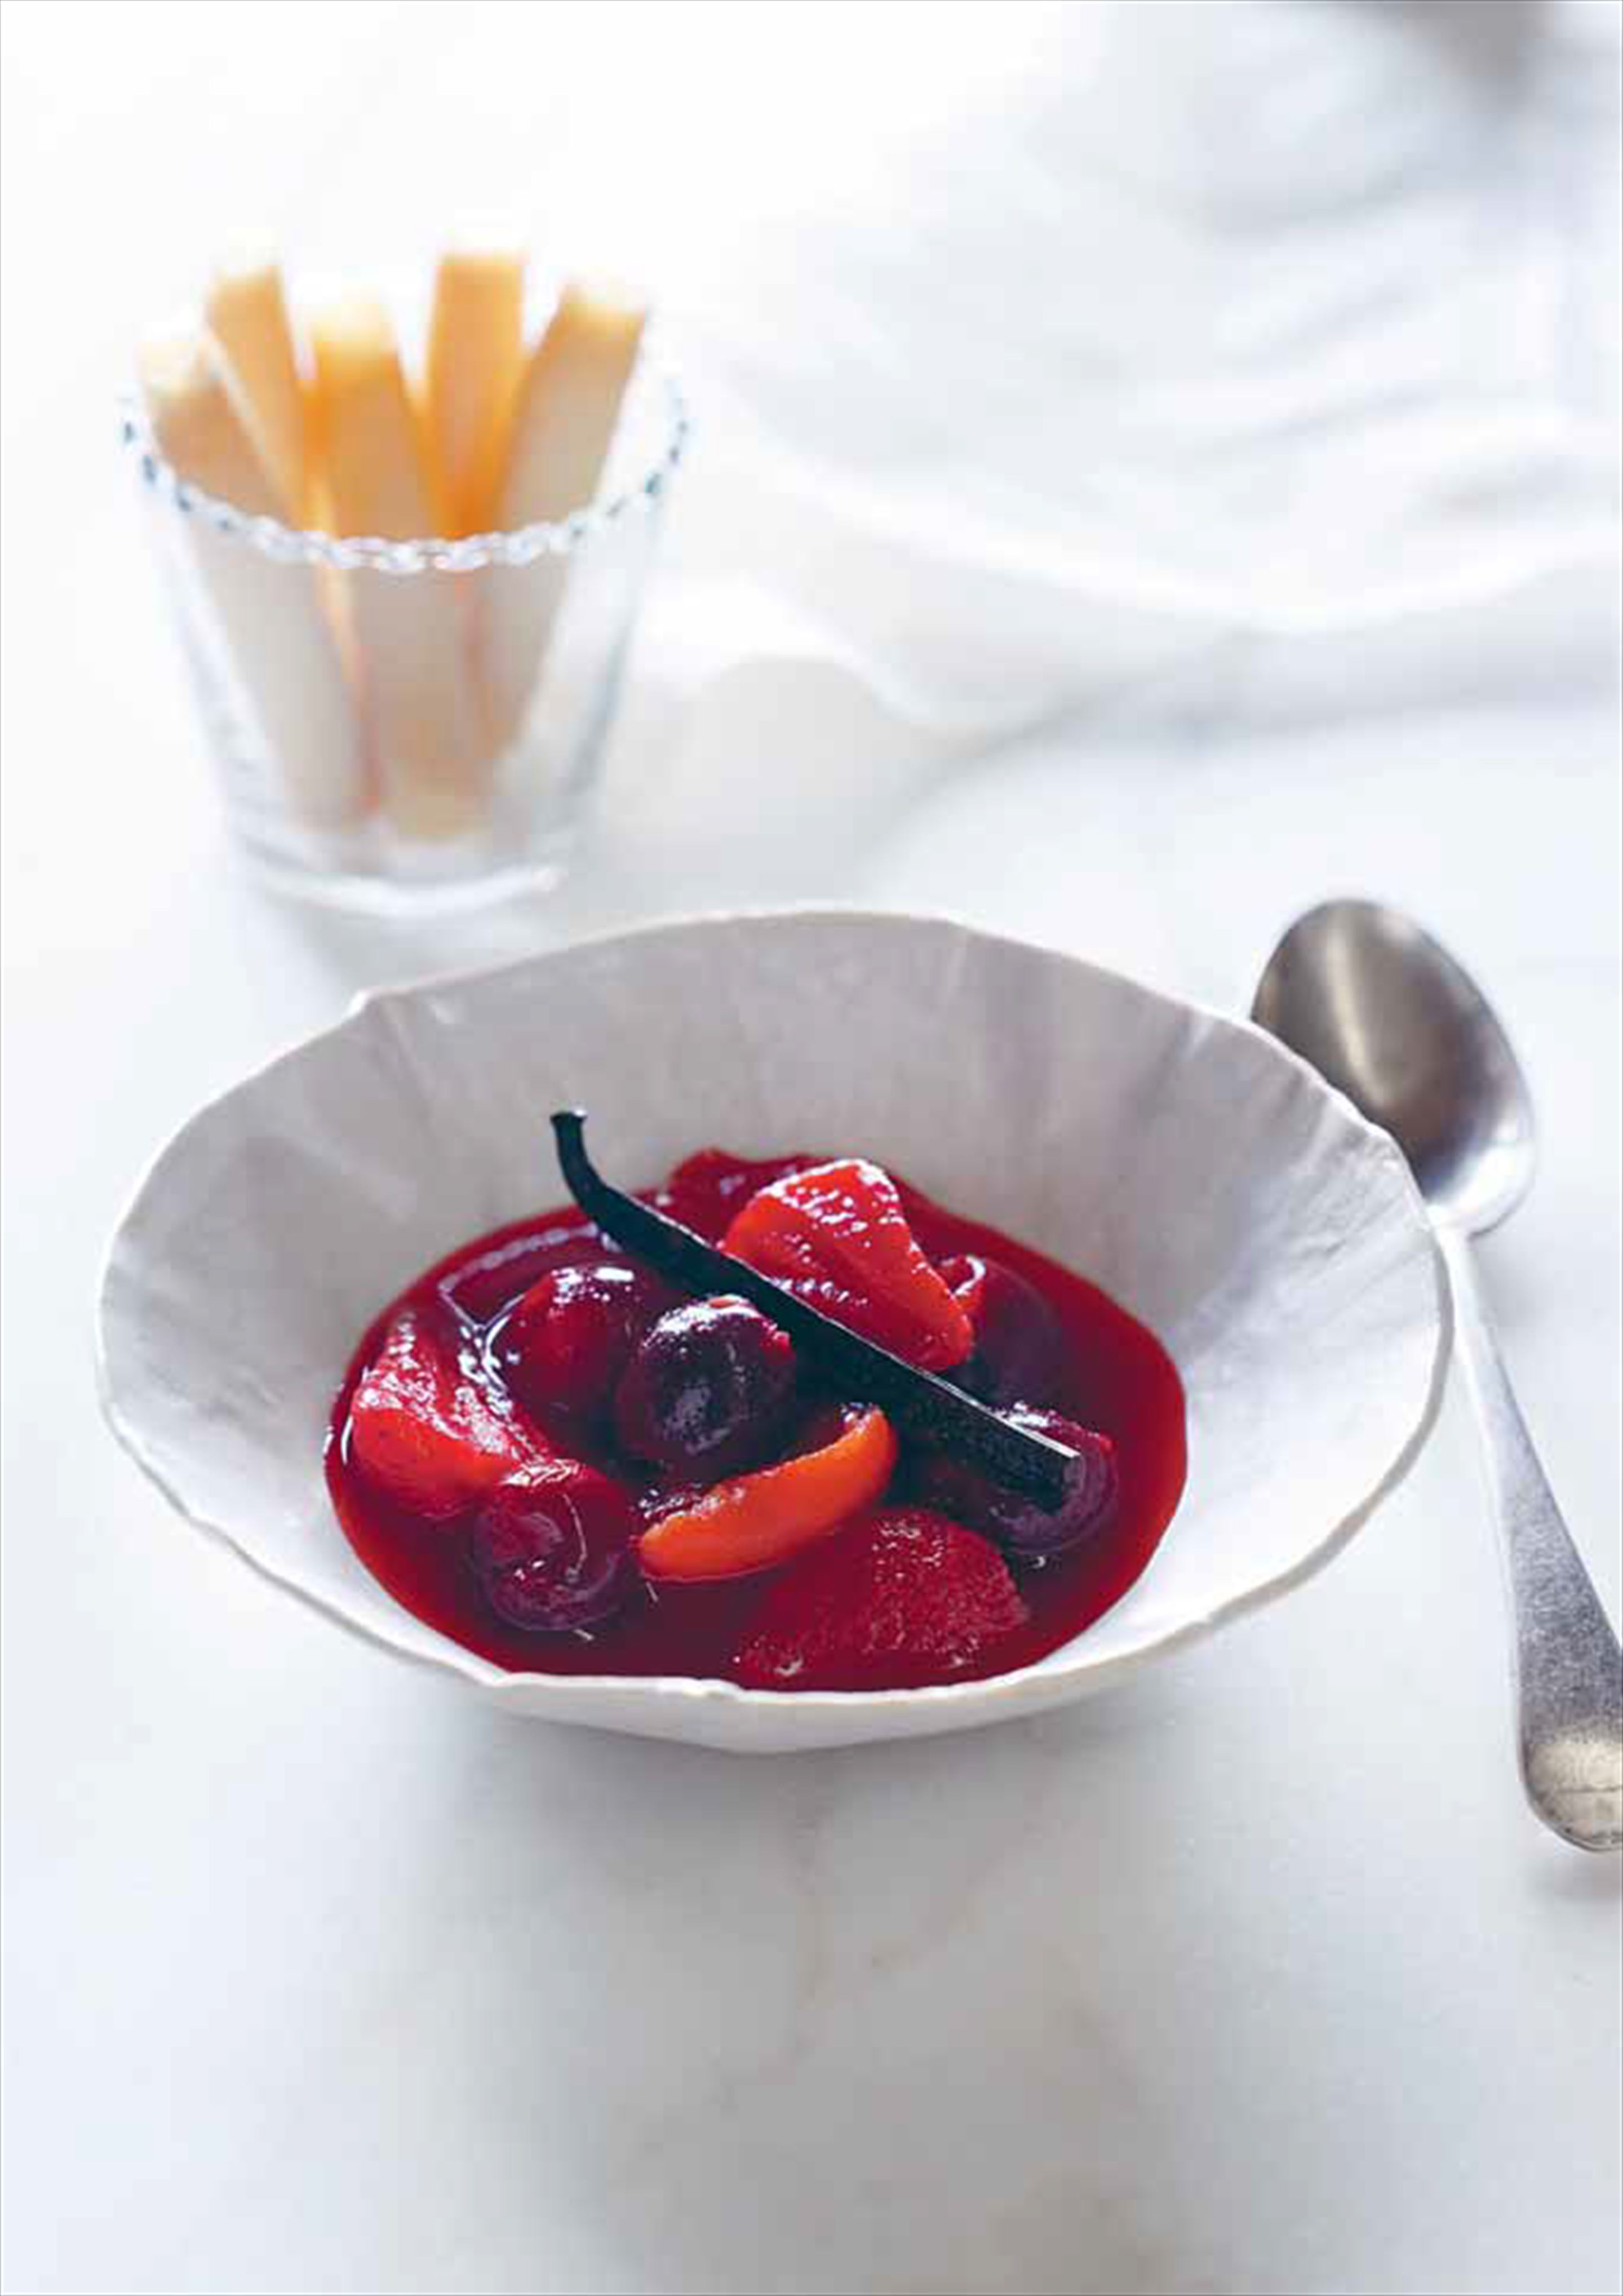 Stewed cherries with strawberries and apricots